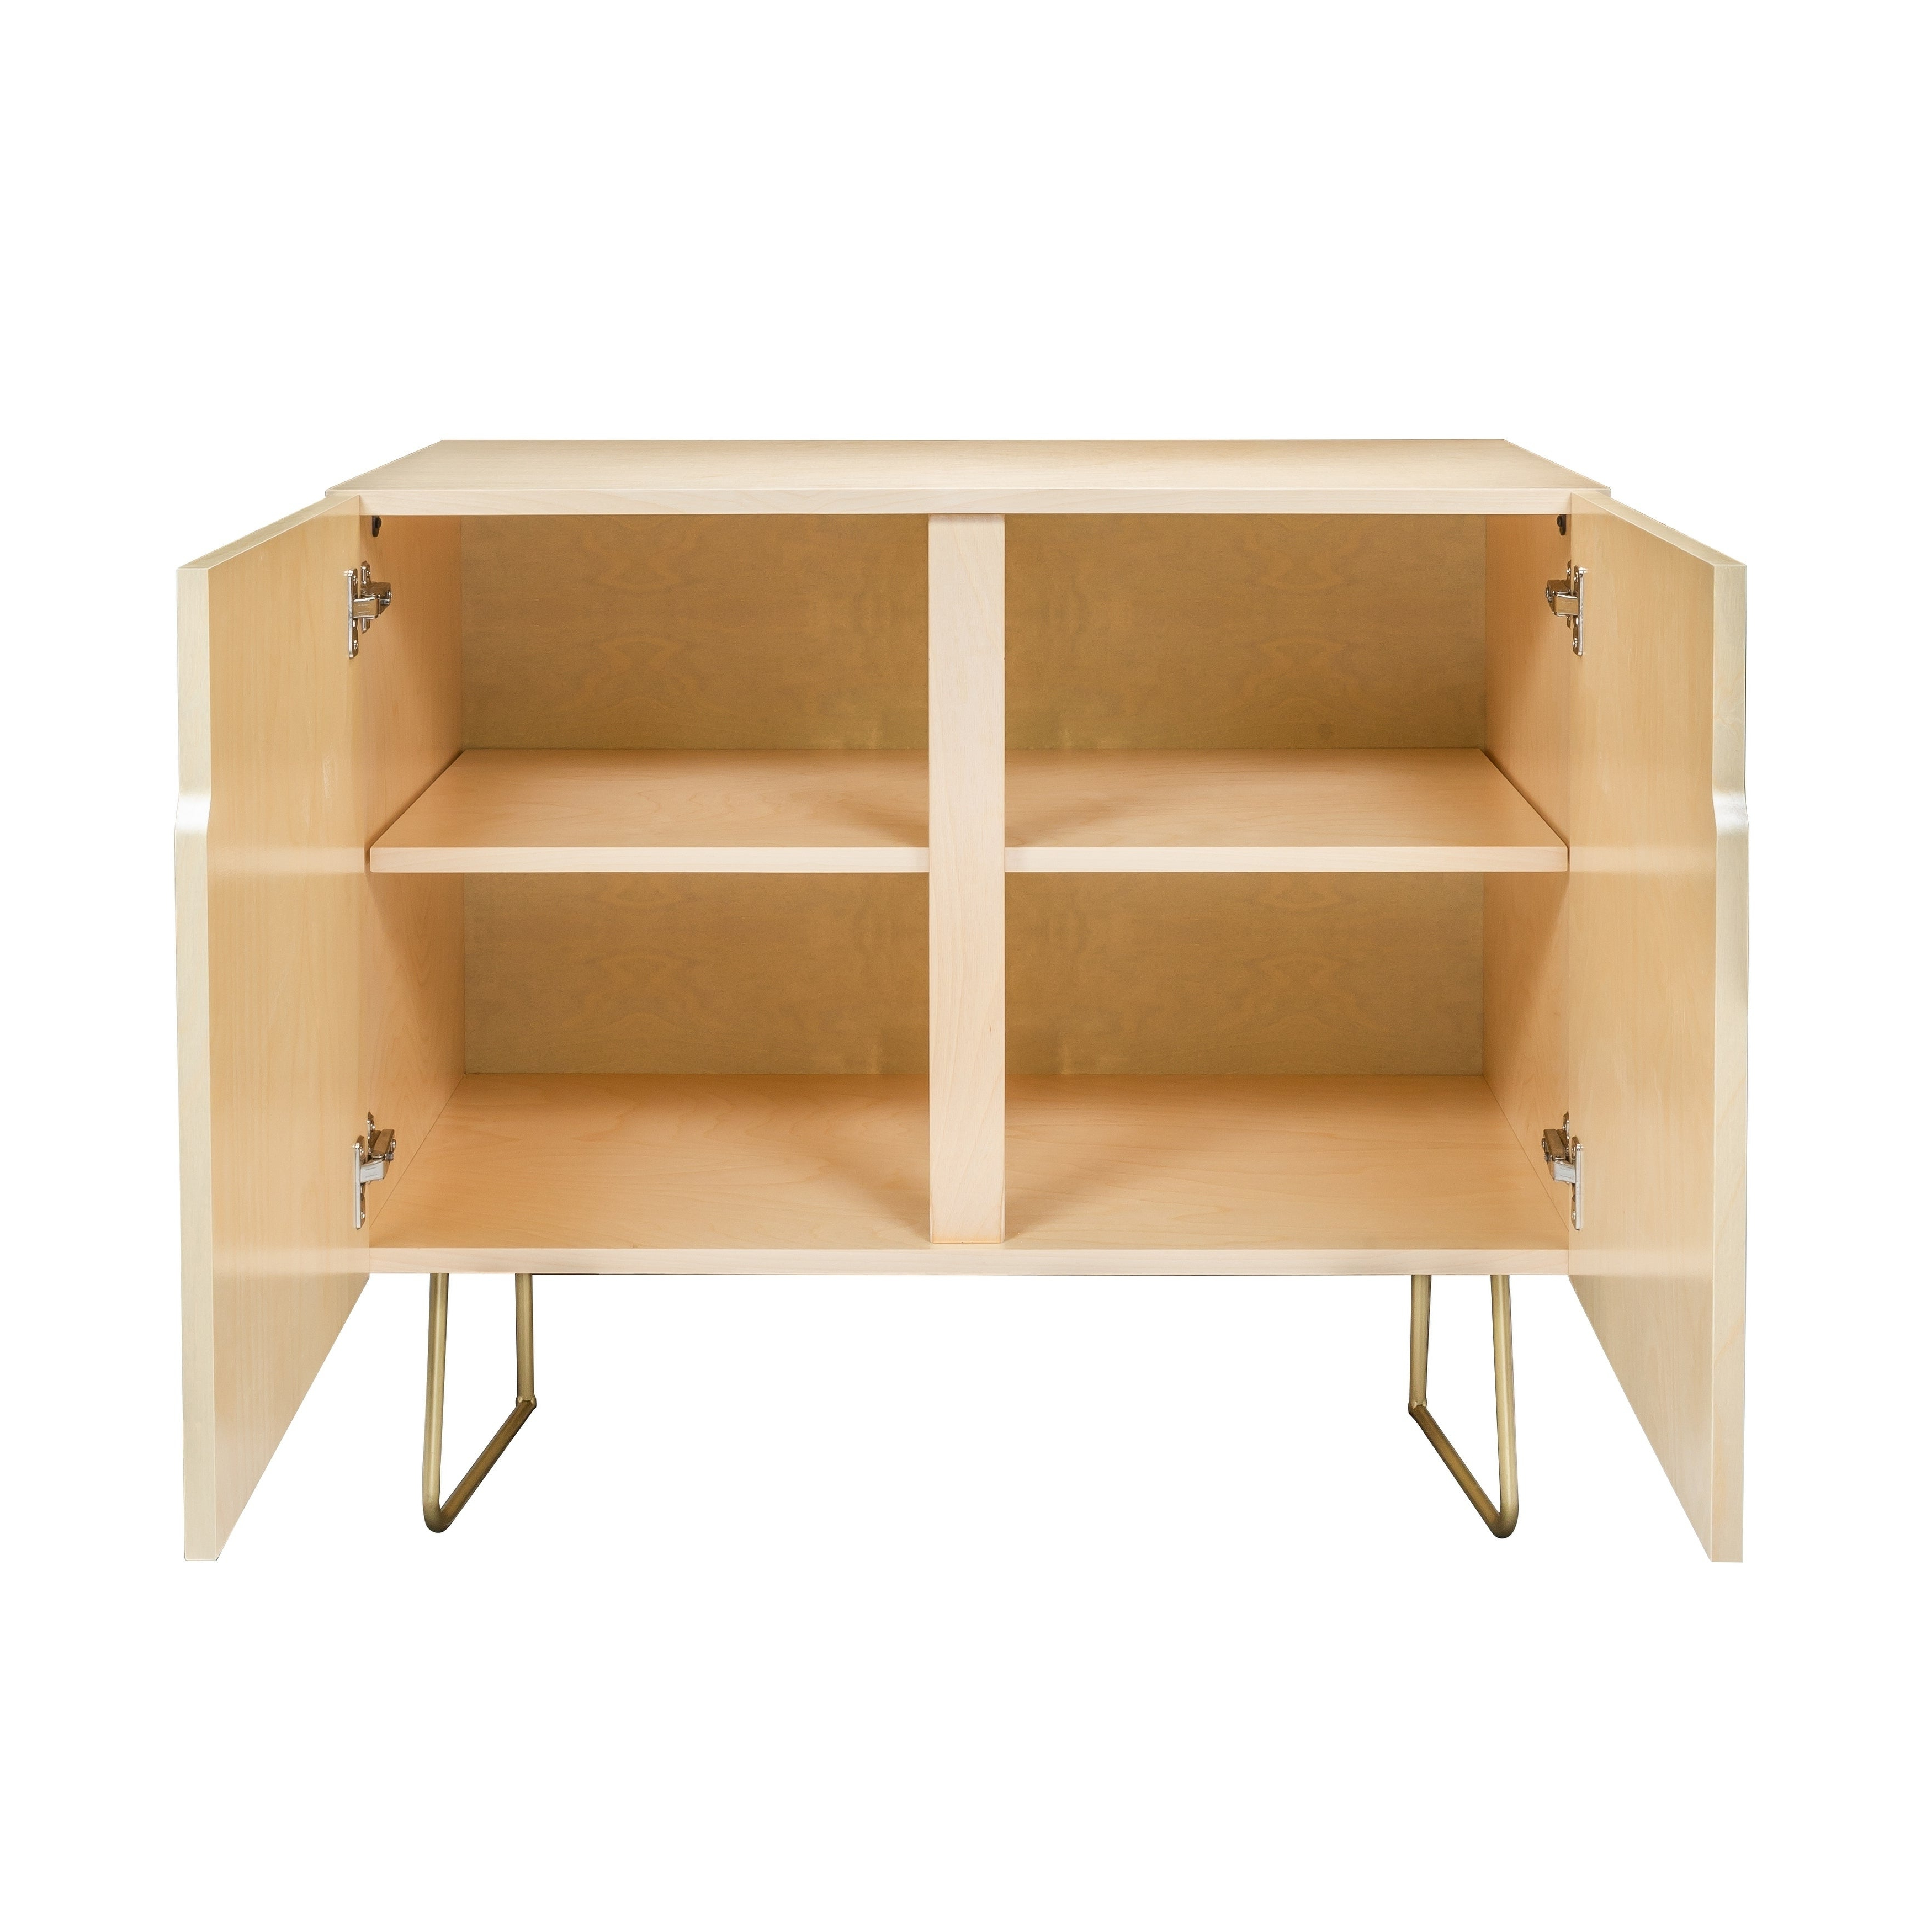 Deny Designs Blossom Credenza (Birch Or Walnut, 2 Leg Options) For Oenomel Credenzas (View 6 of 20)